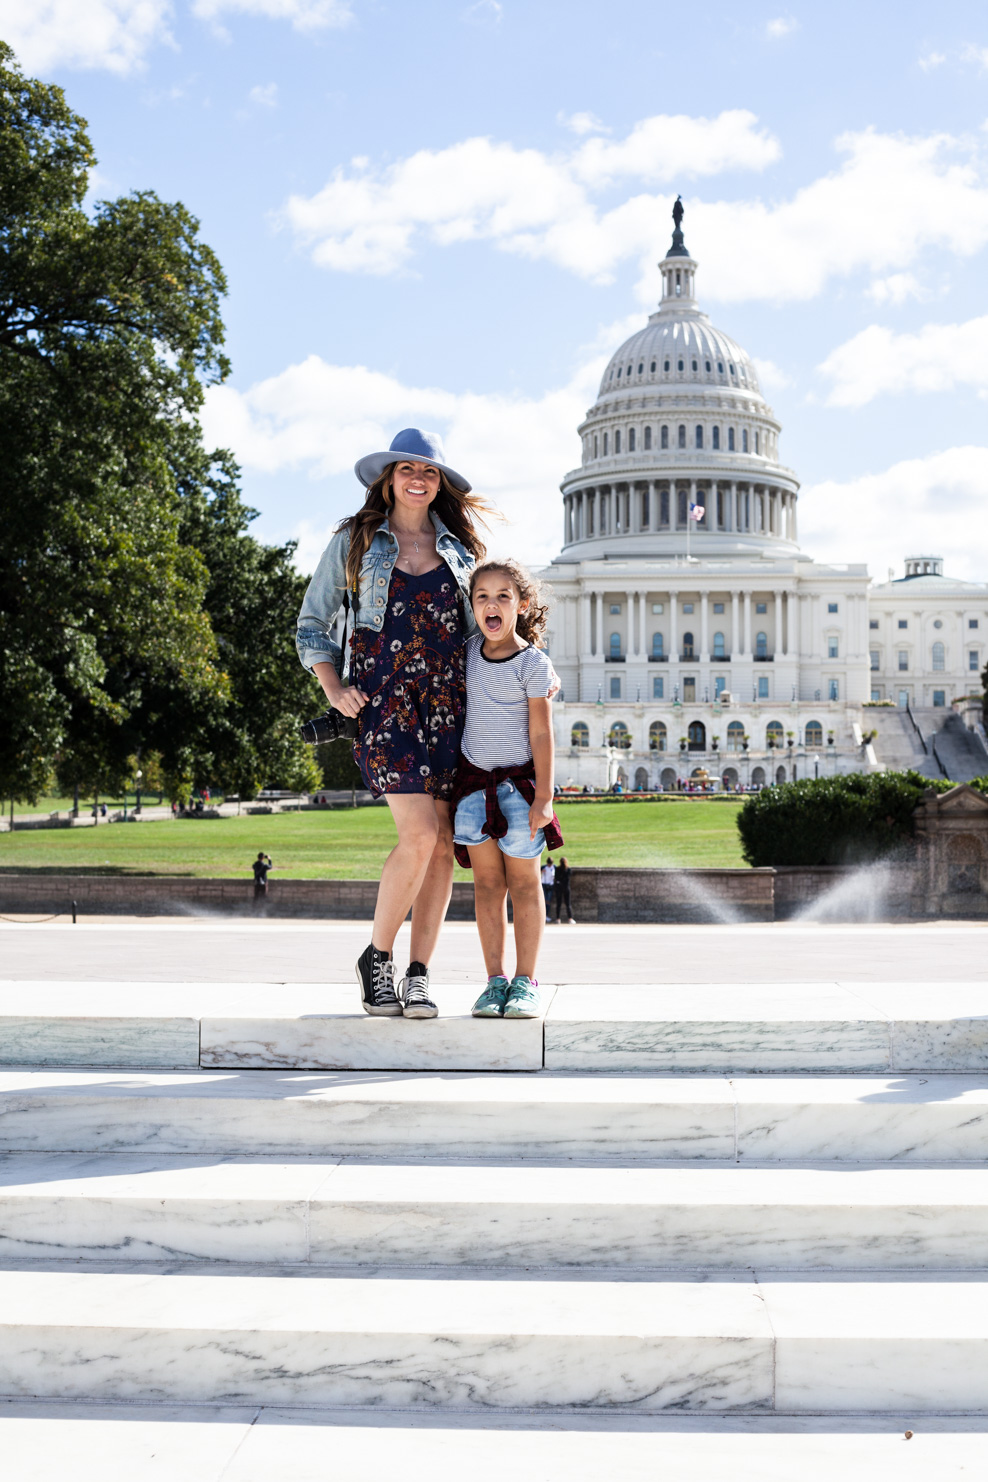 Lifestyle Blog Chocolate and Lace shares her family trip to Washington D.C. staying at the Capitol Hill Hotel.